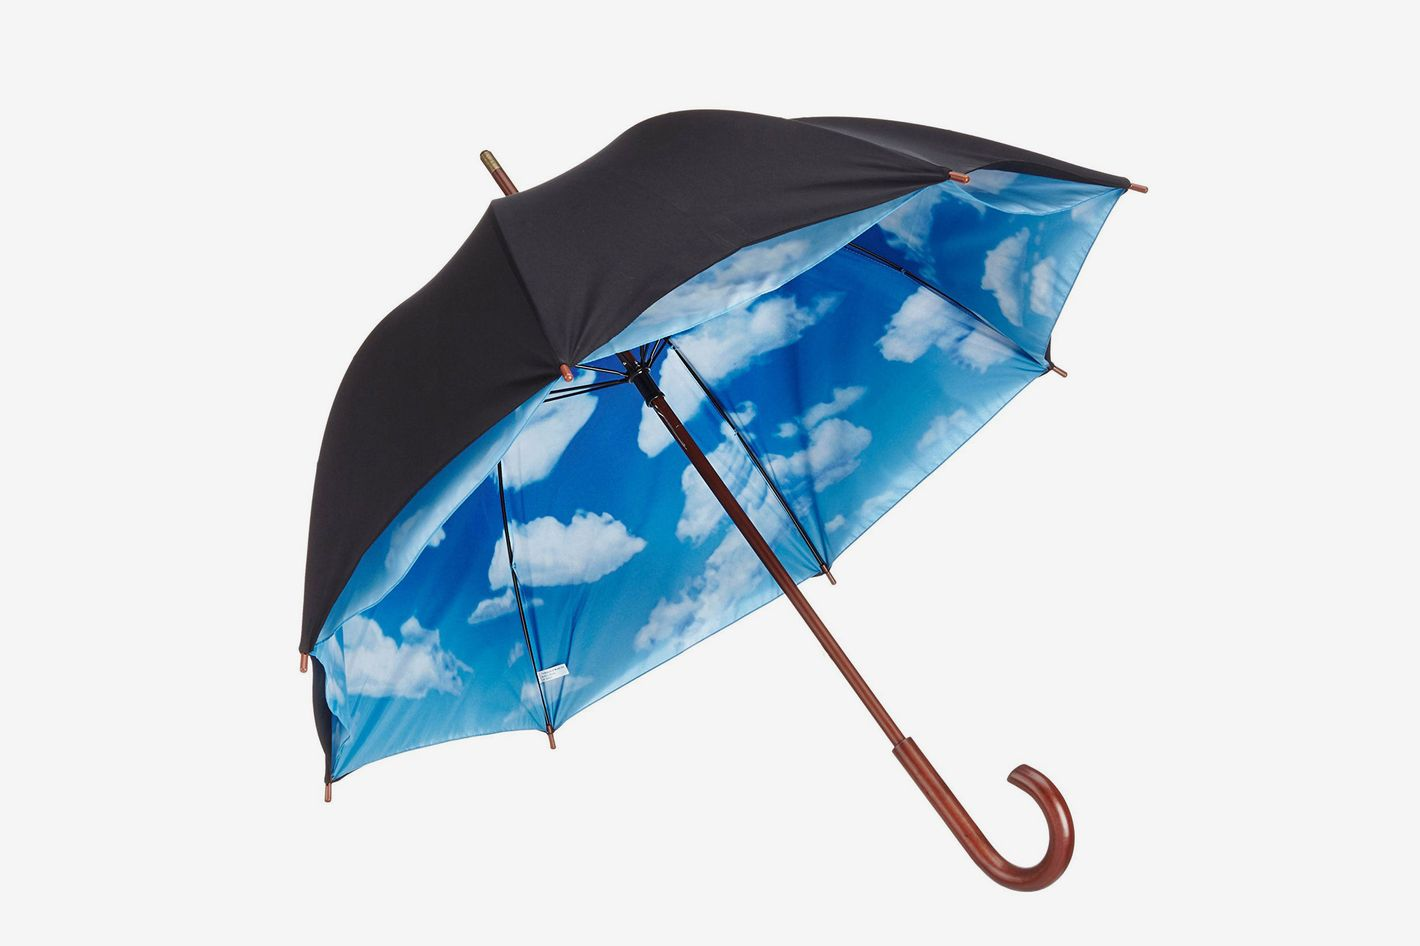 Best Umbrella To Give As A Gift